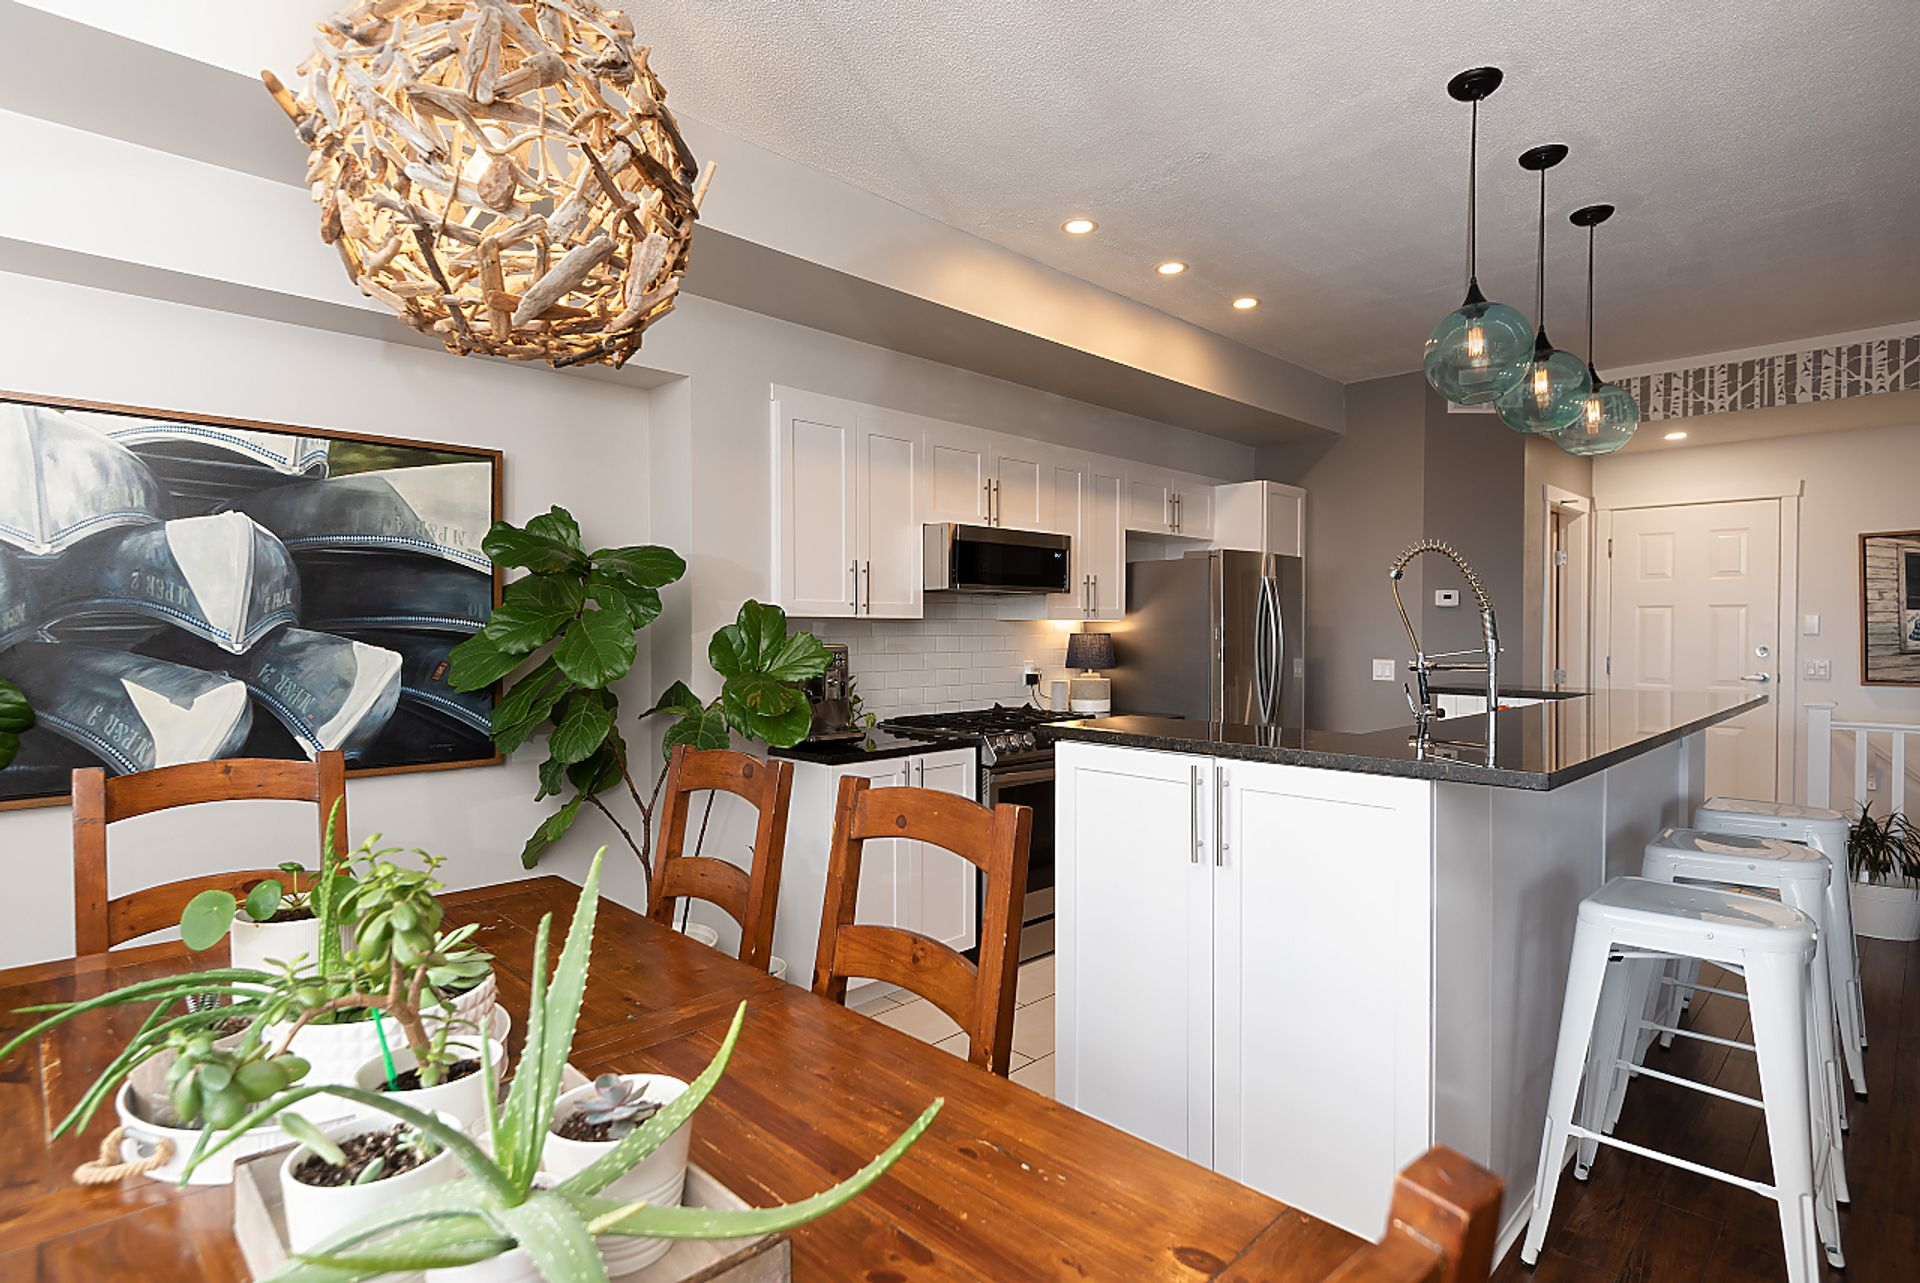 024 at 66 - 55 Hawthorn Drive, Heritage Woods PM, Port Moody